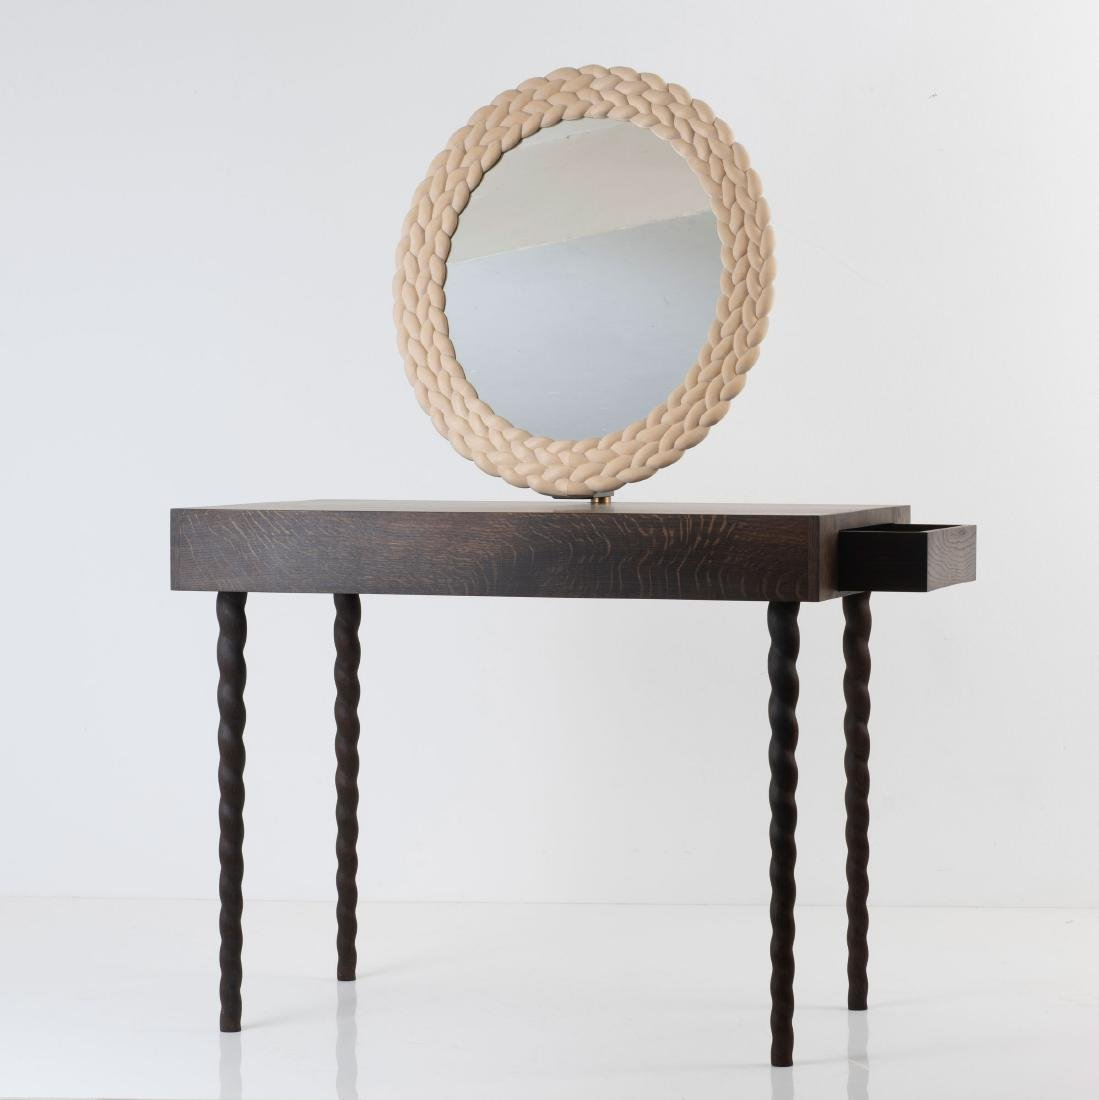 'Psyche' dressing table, 2010 - 2